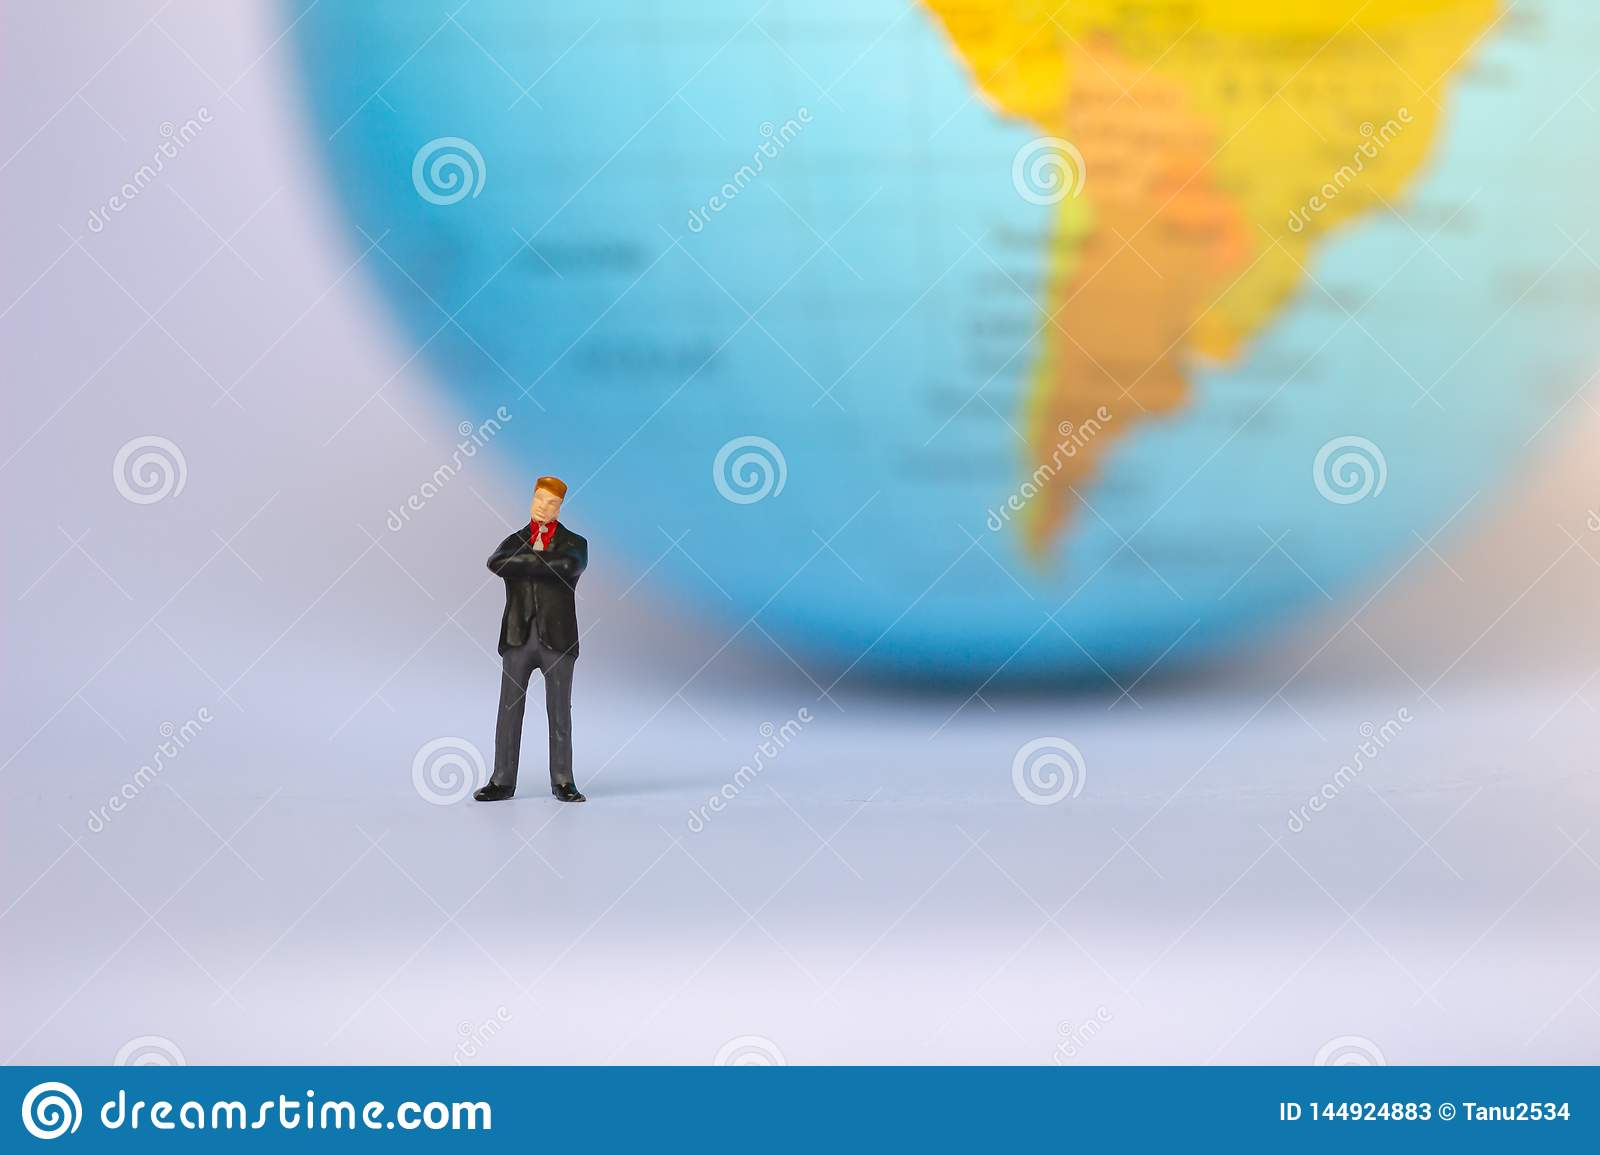 Small businessman figures standing on turning point on earth background.